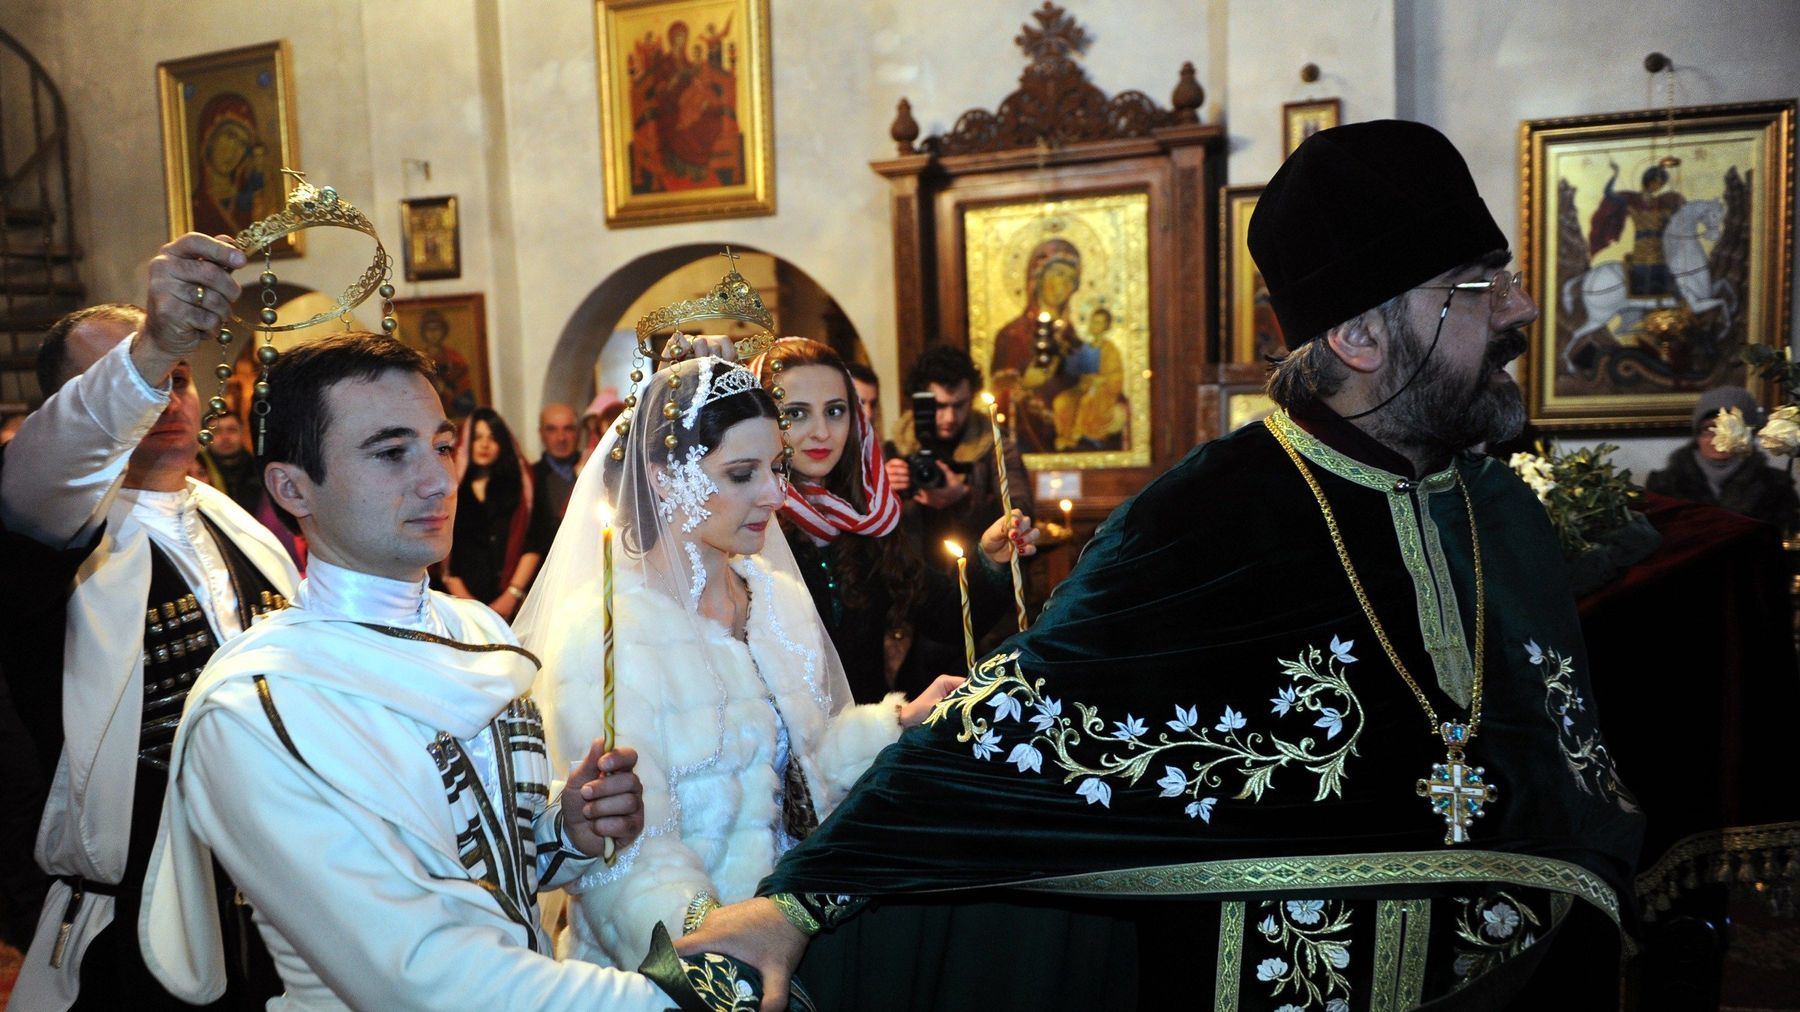 Georgian Orthodox wedding mgid ao image logotv.com 651082